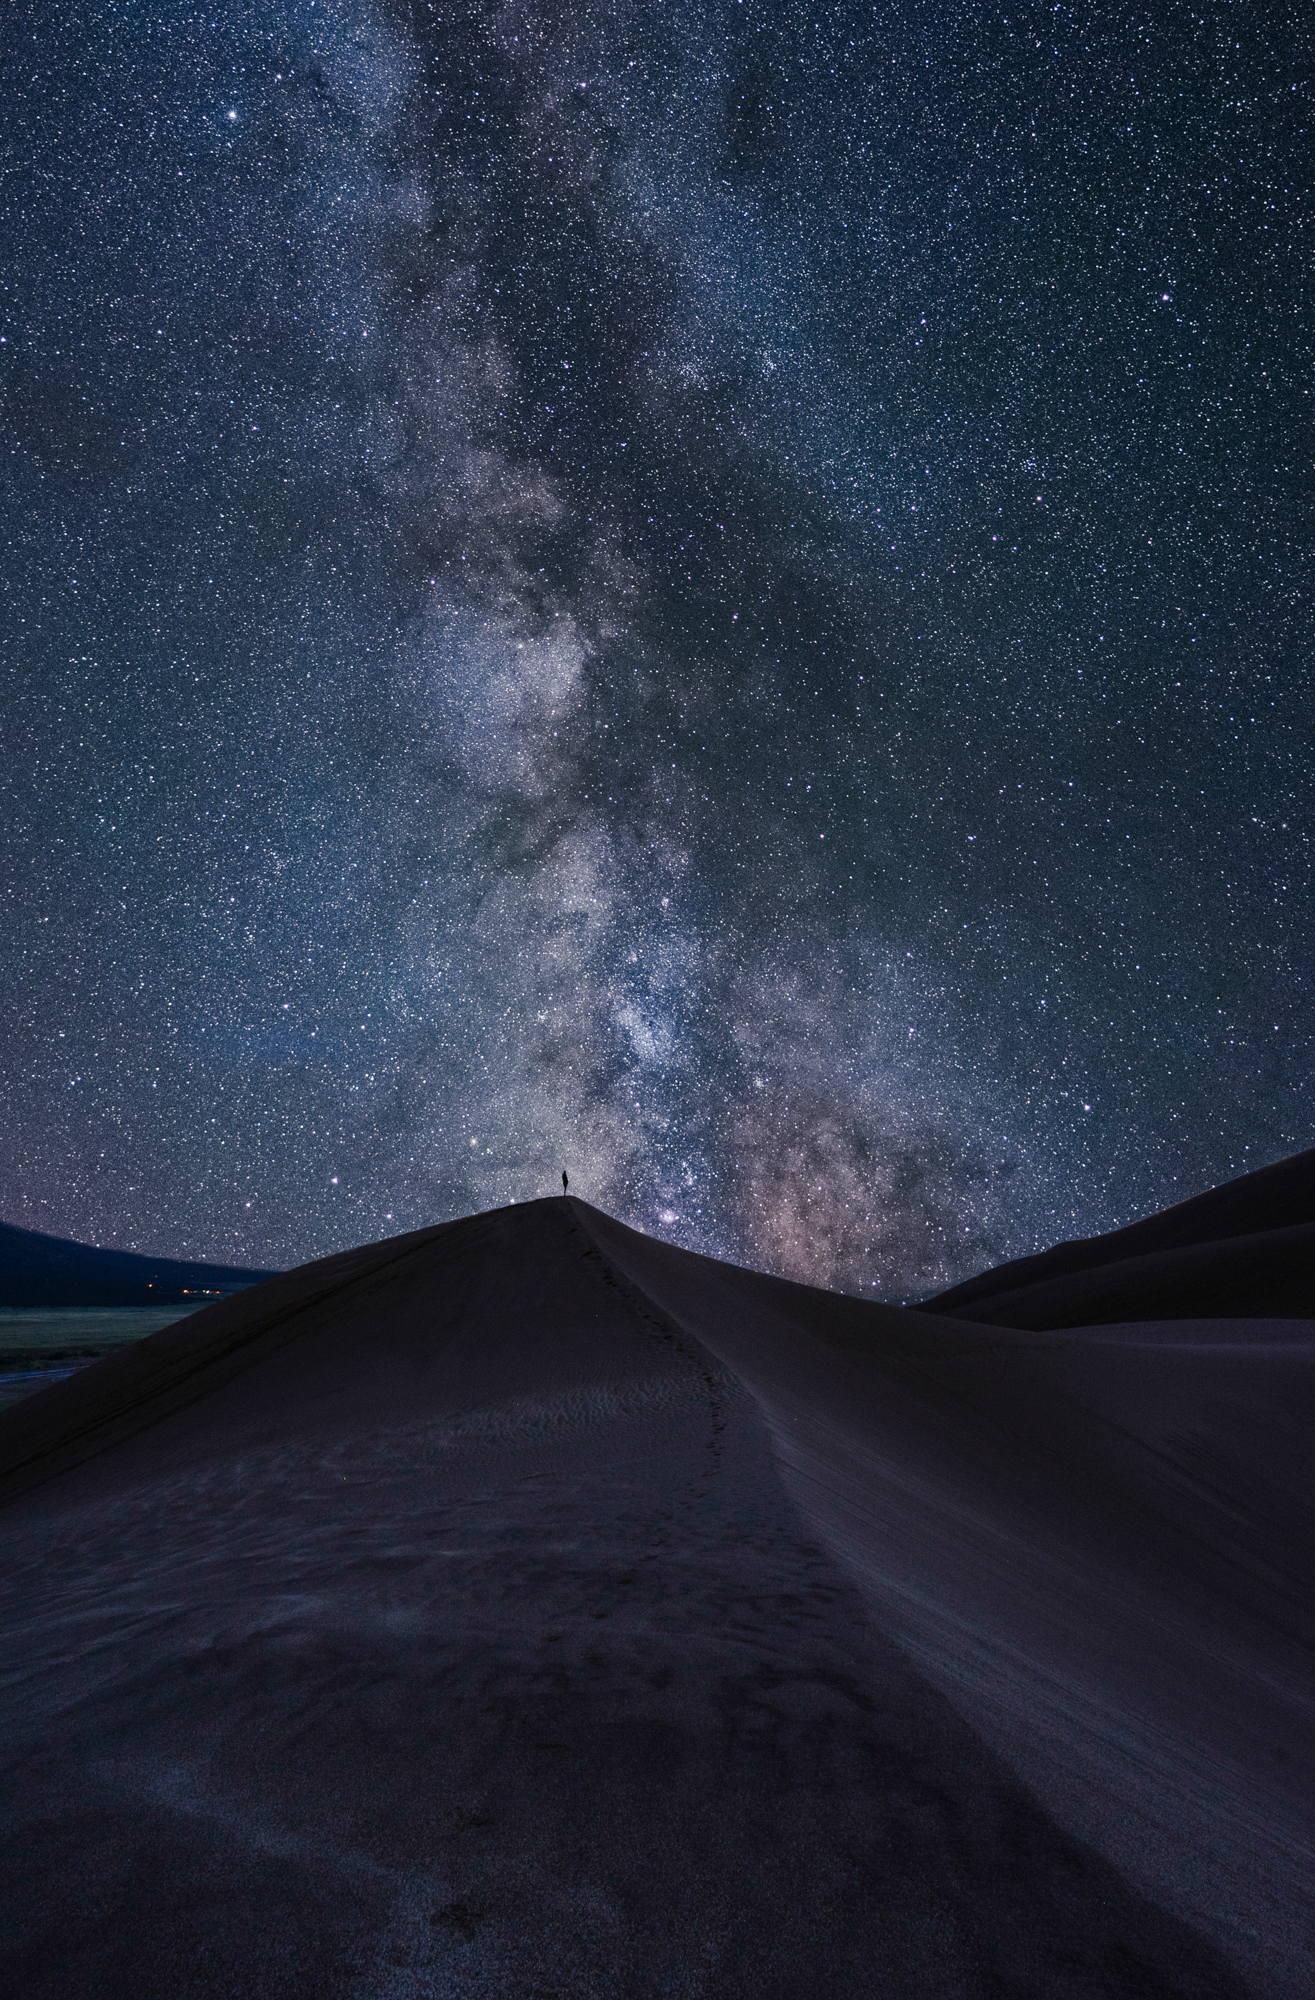 Milky Way over small figure standing on a sand dune